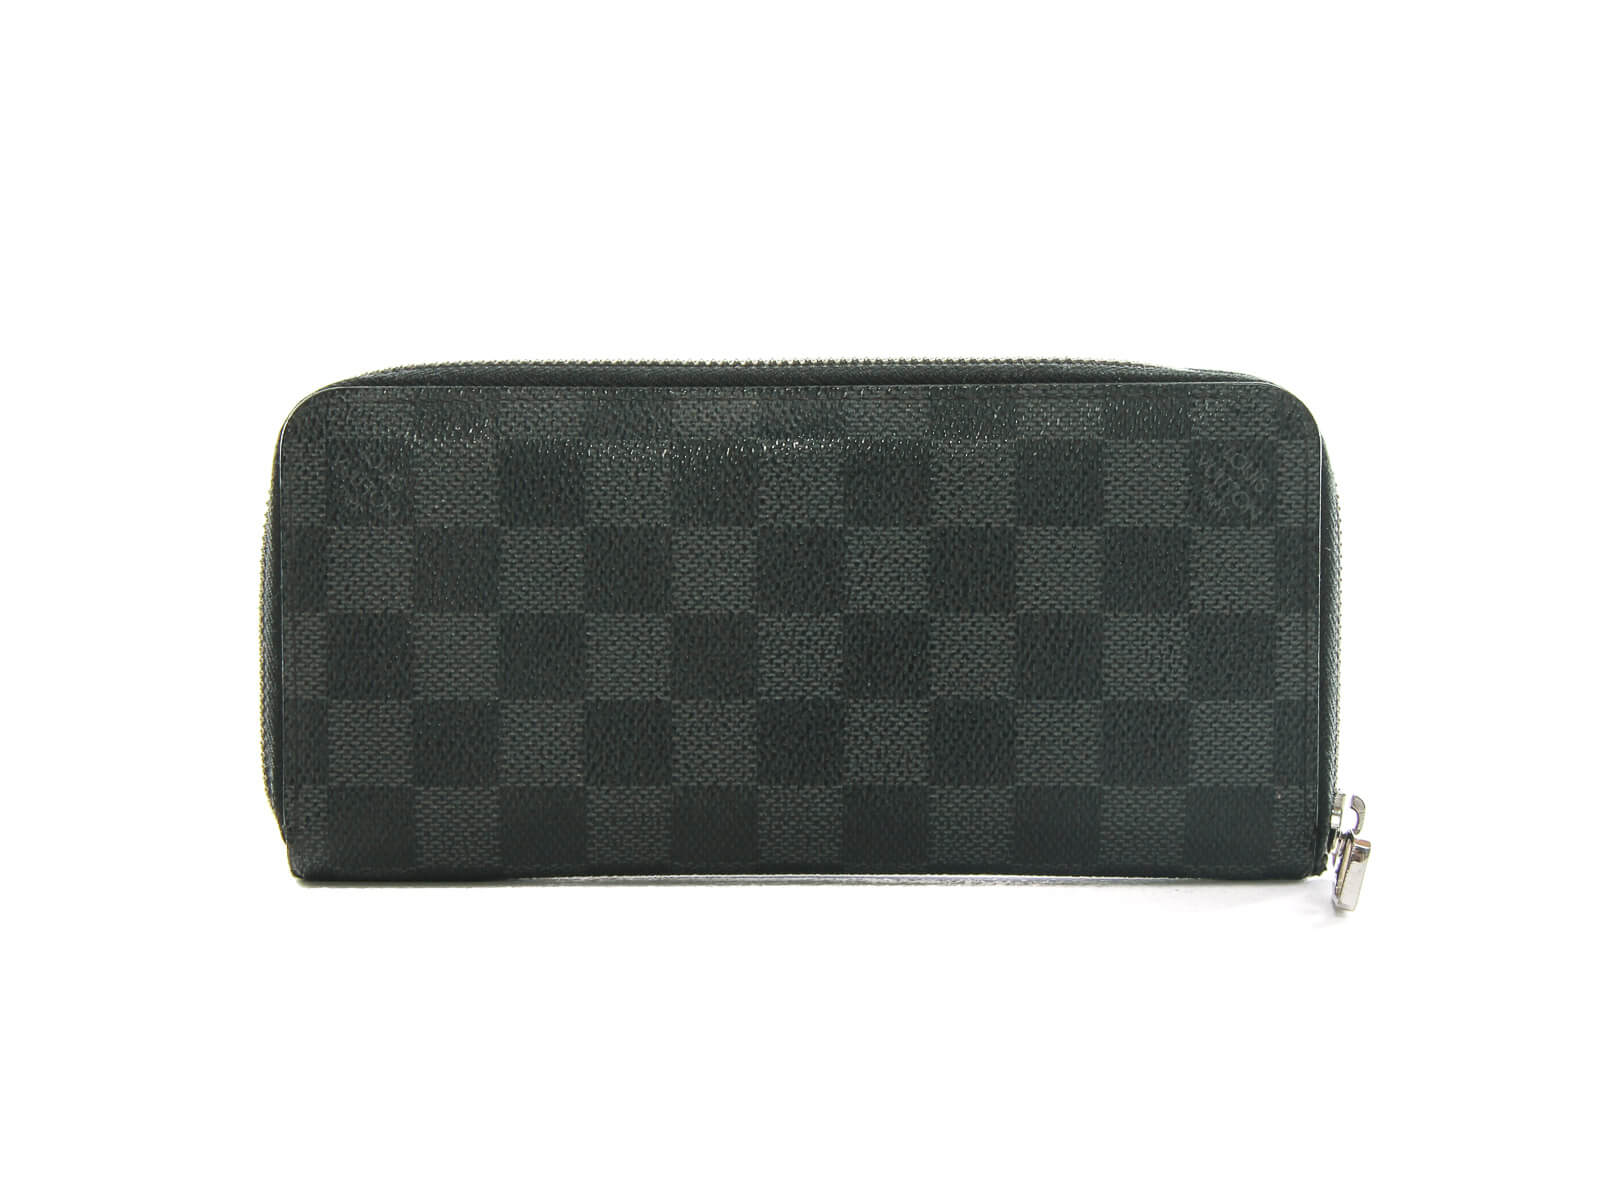 Authentic LOUIS VUITTON Damier Graphite Zippy Organizer Wallet